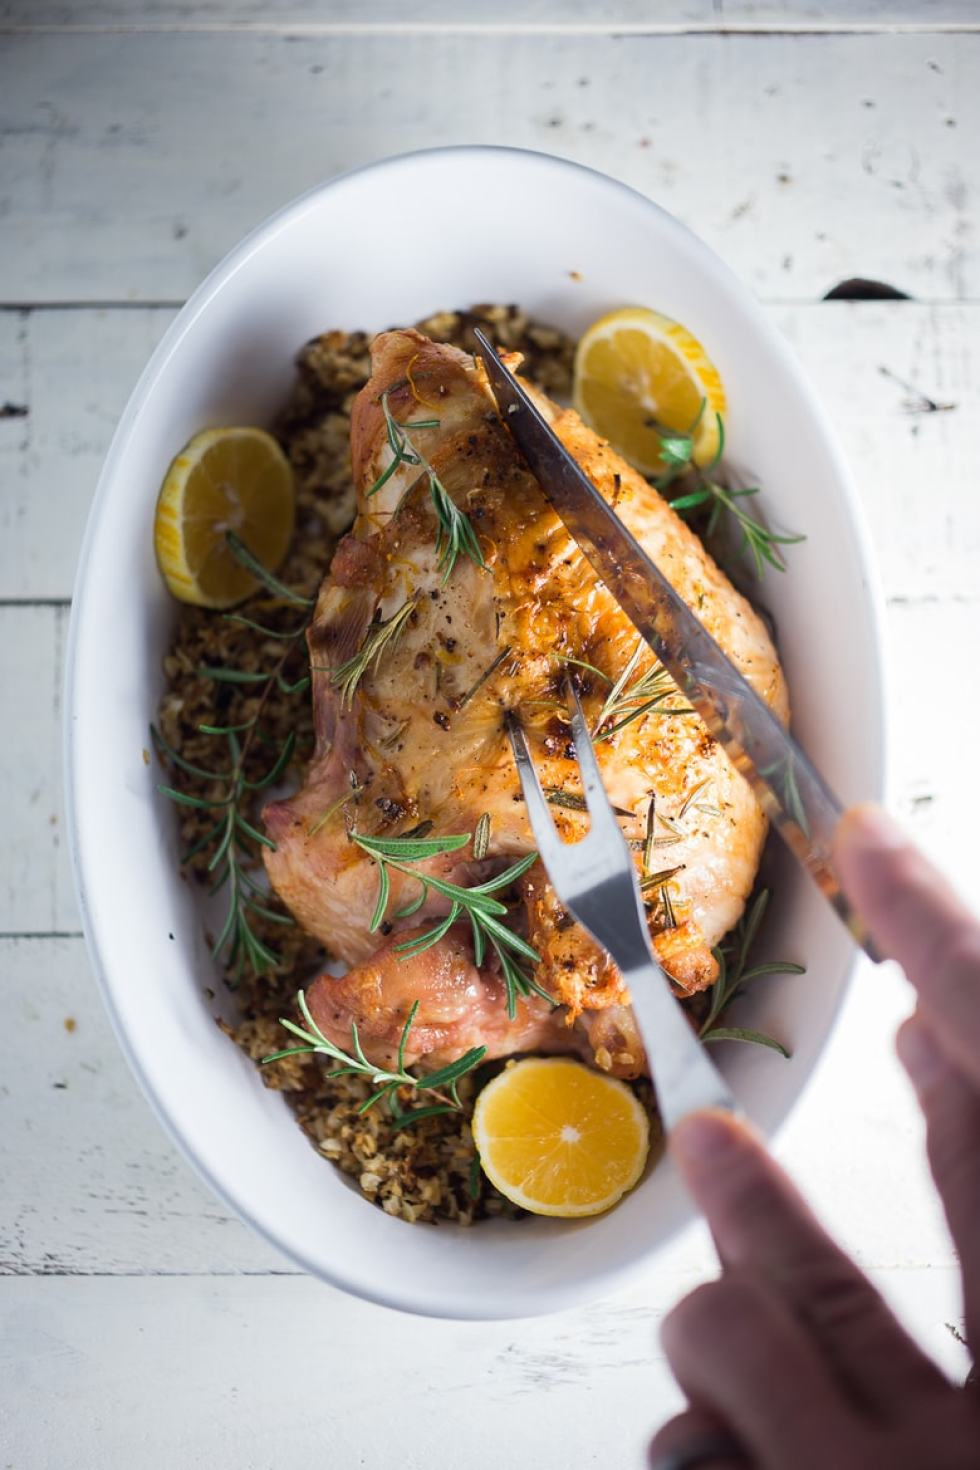 Simple Roast Turkey for Two with Rosemary and Meyer Lemon baked over riced cauliflower. | www.feastingathome.com